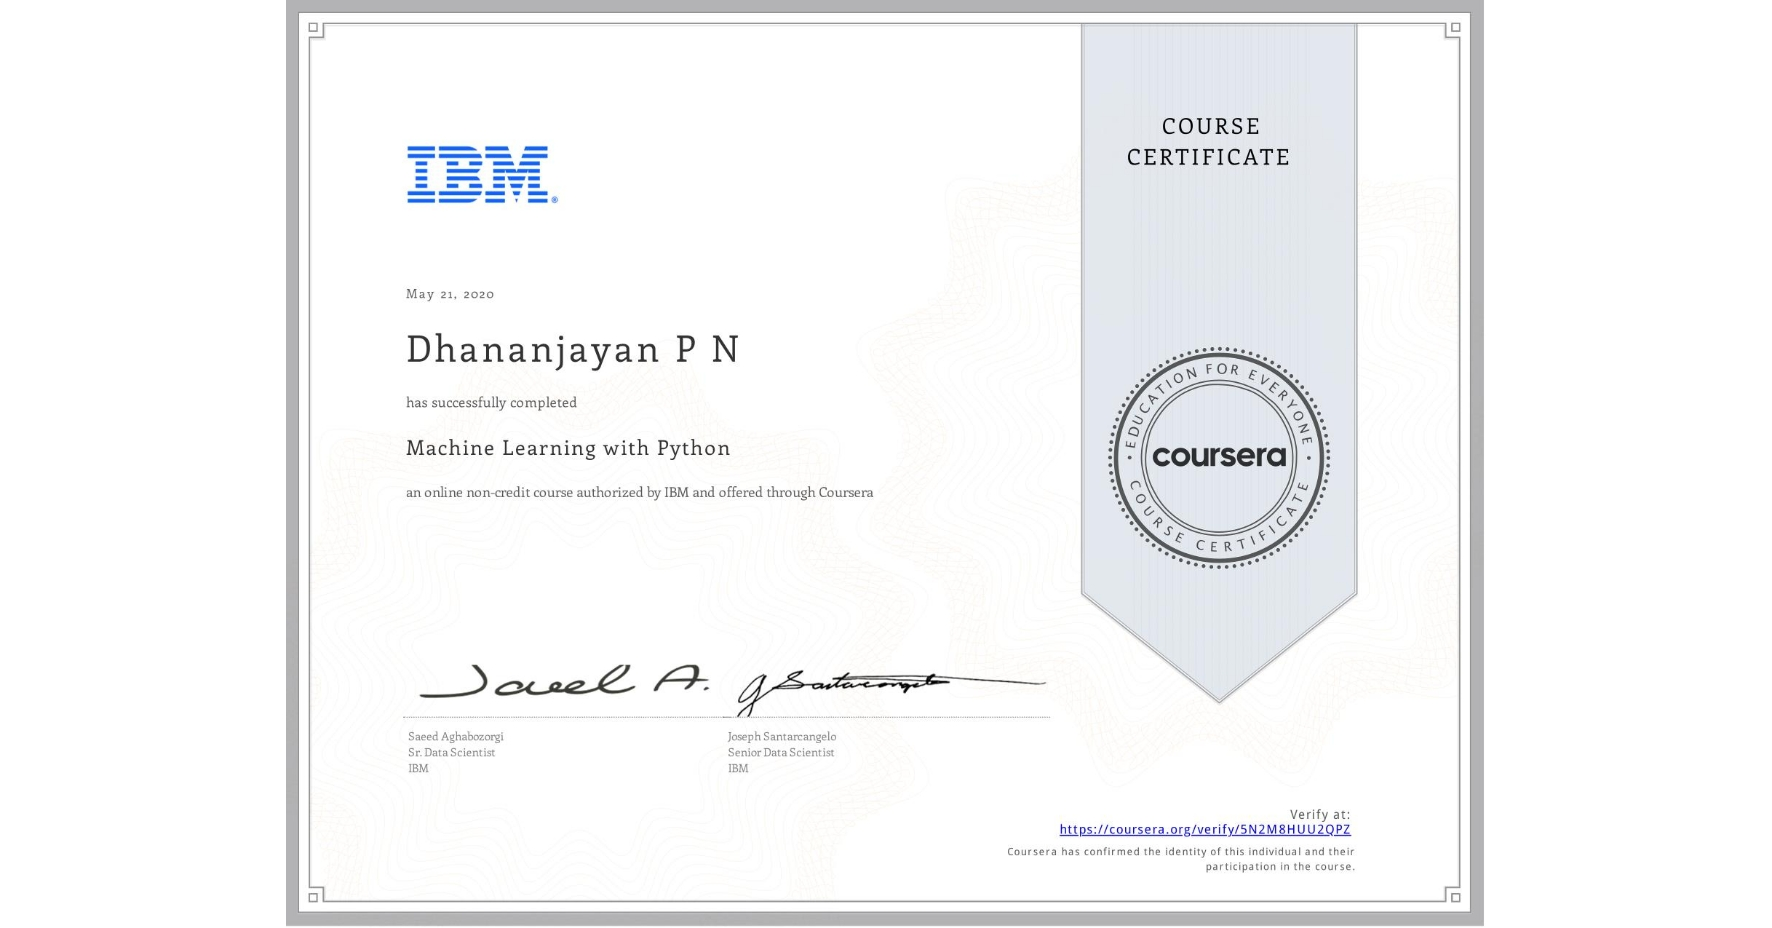 View certificate for Dhananjayan P N, Machine Learning with Python, an online non-credit course authorized by IBM and offered through Coursera